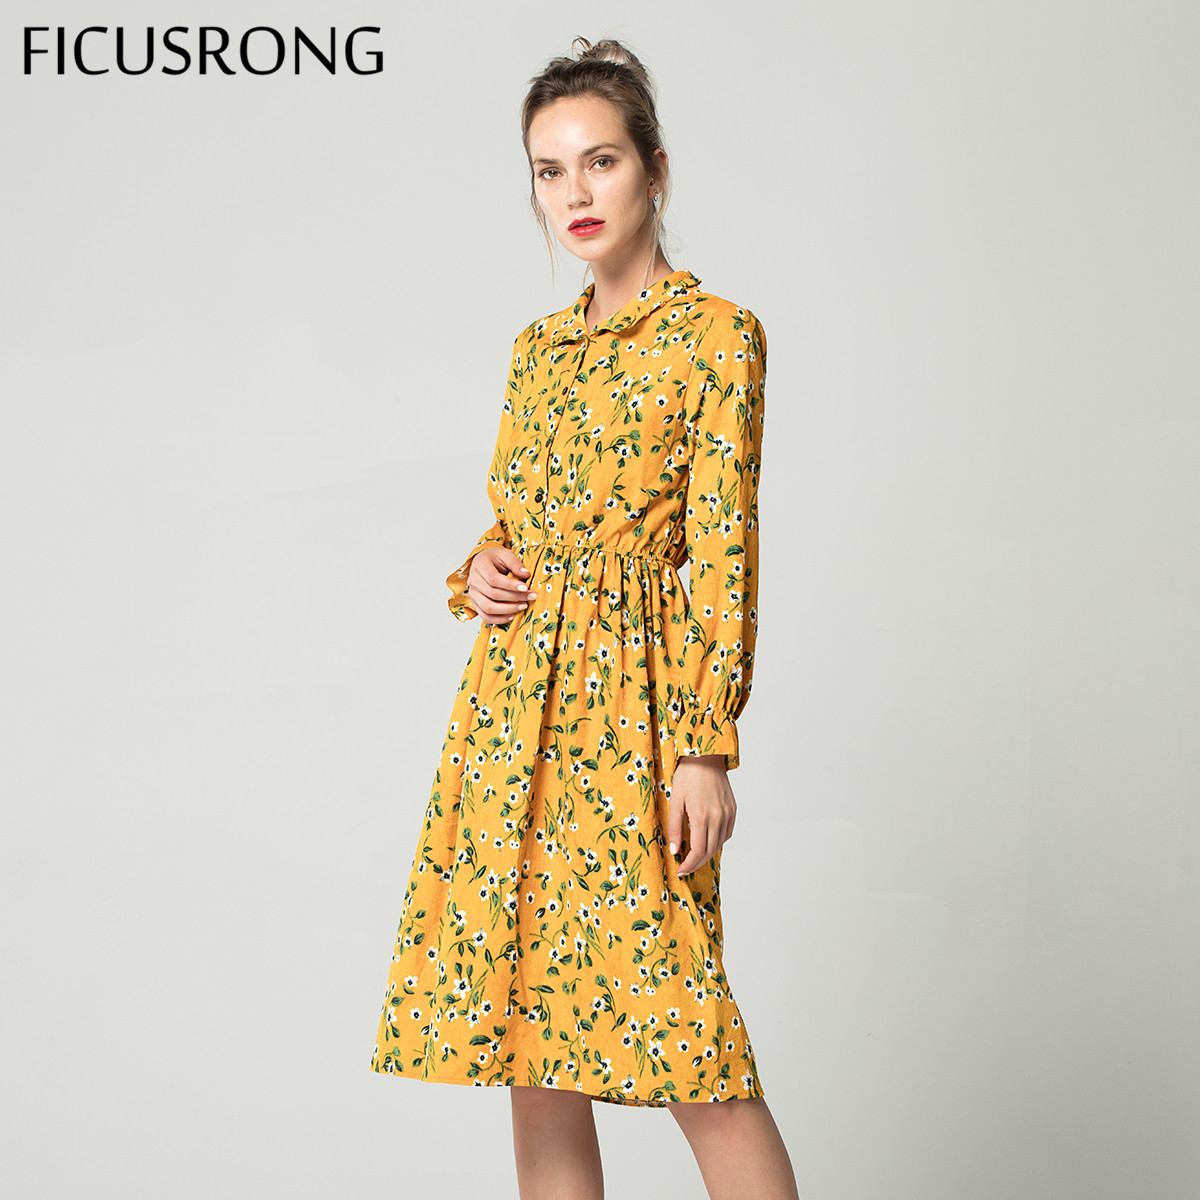 Dressing Gowns For Women: Corduroy High Elastic Waist Vintage Dress A Line Style